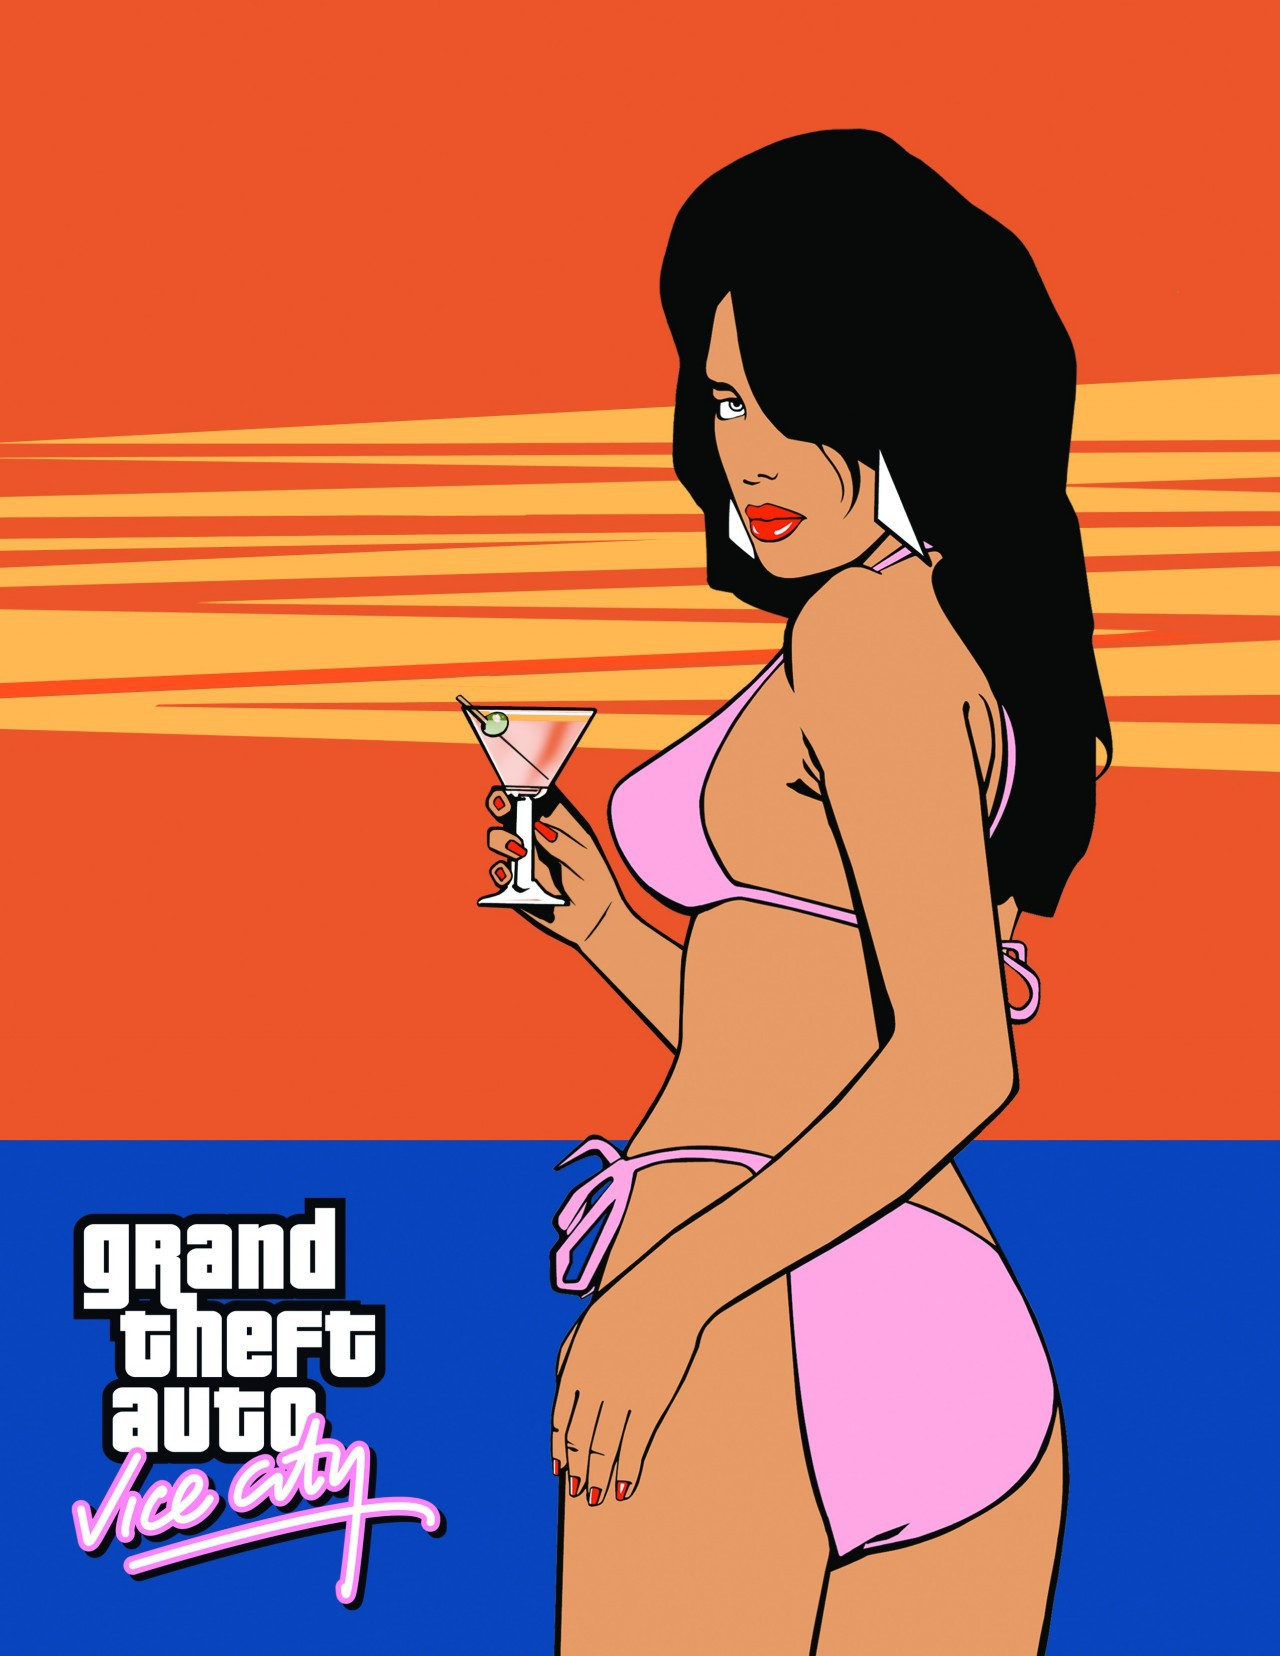 Gta vice city sex porn pictures nsfw movie